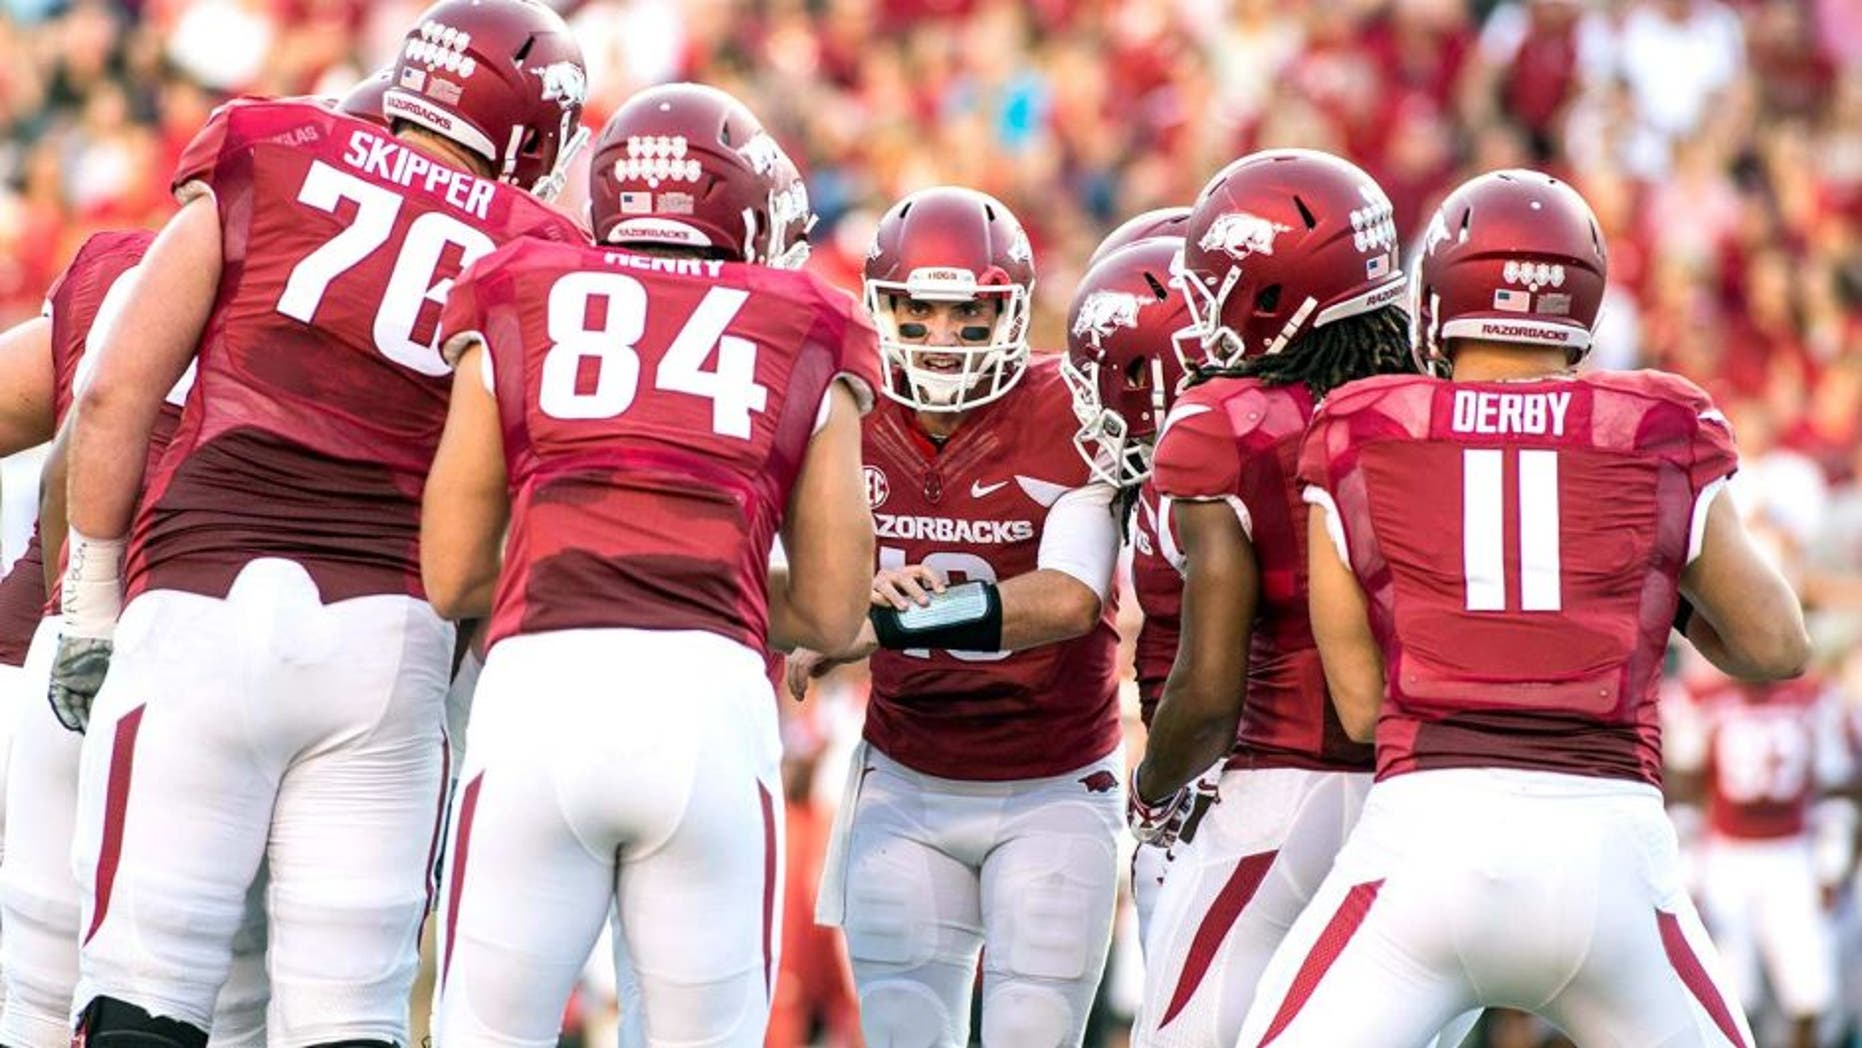 Sep 20, 2014; Fayetteville, AR, USA; Arkansas Razorbacks quarterback Brandon Allen (10, center) calls a play as offensive tackle Dan Skipper (74) tight end Henry Hunter (84) tightened A.J. Derby (11) and other players look on during the first half of a game against Northern Illinois Huskies at Donald W. Reynolds Razorback Stadium. Mandatory Credit: Beth Hall-USA TODAY Sports